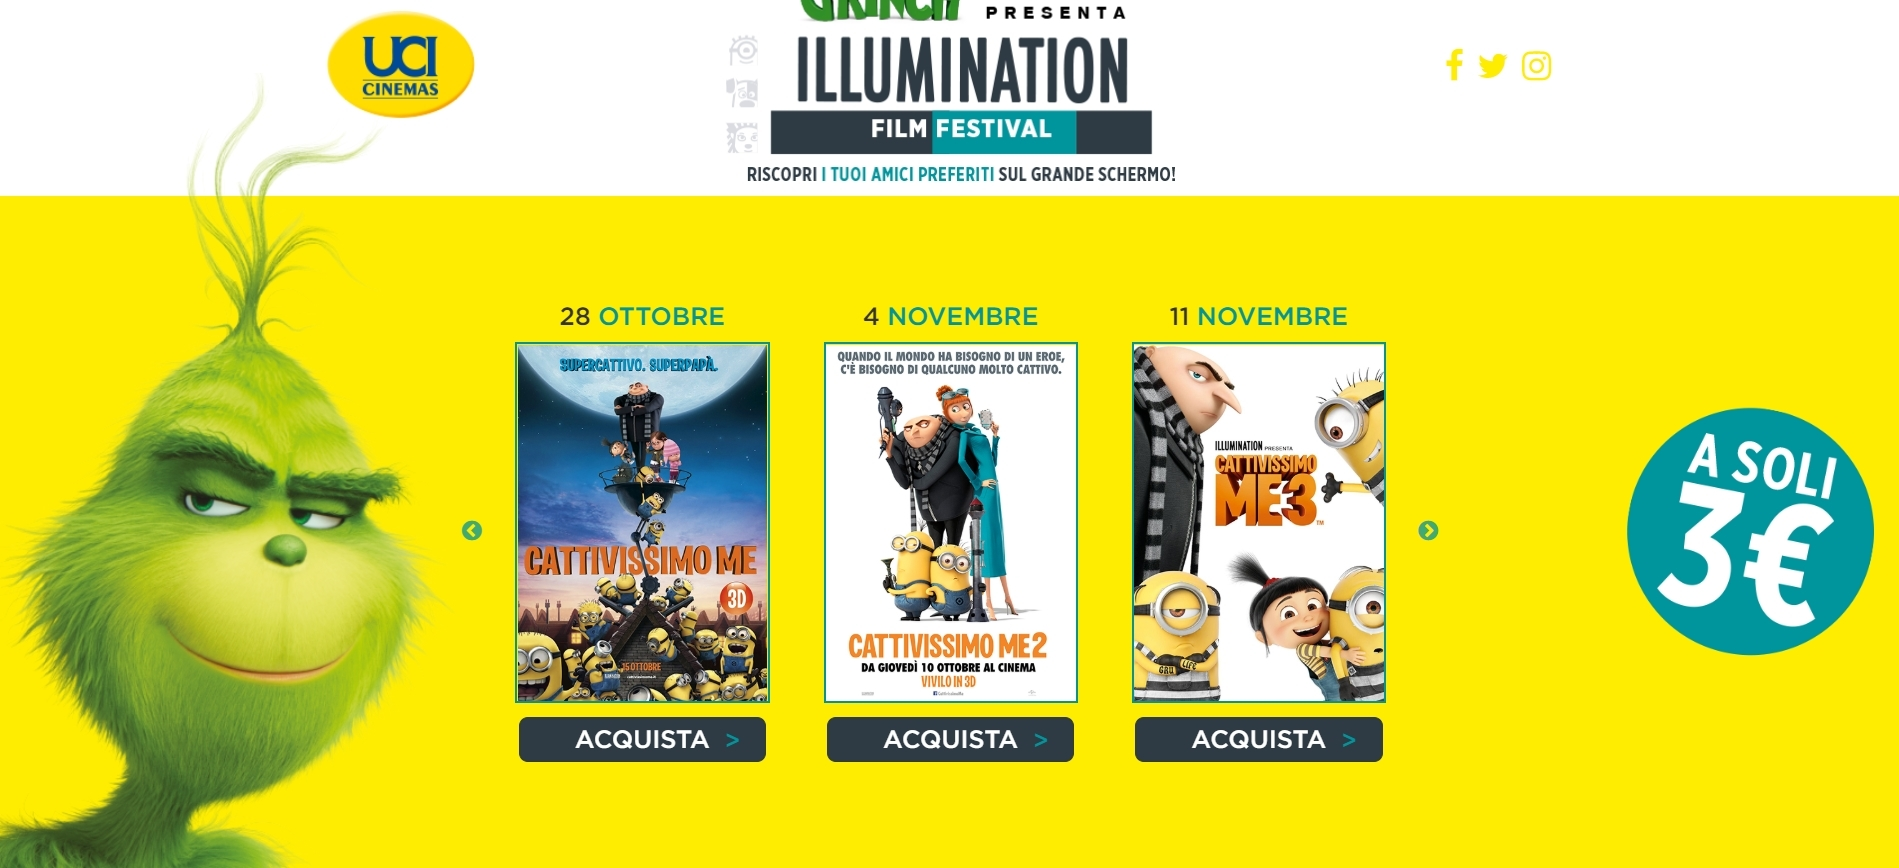 Illumination Film Festival